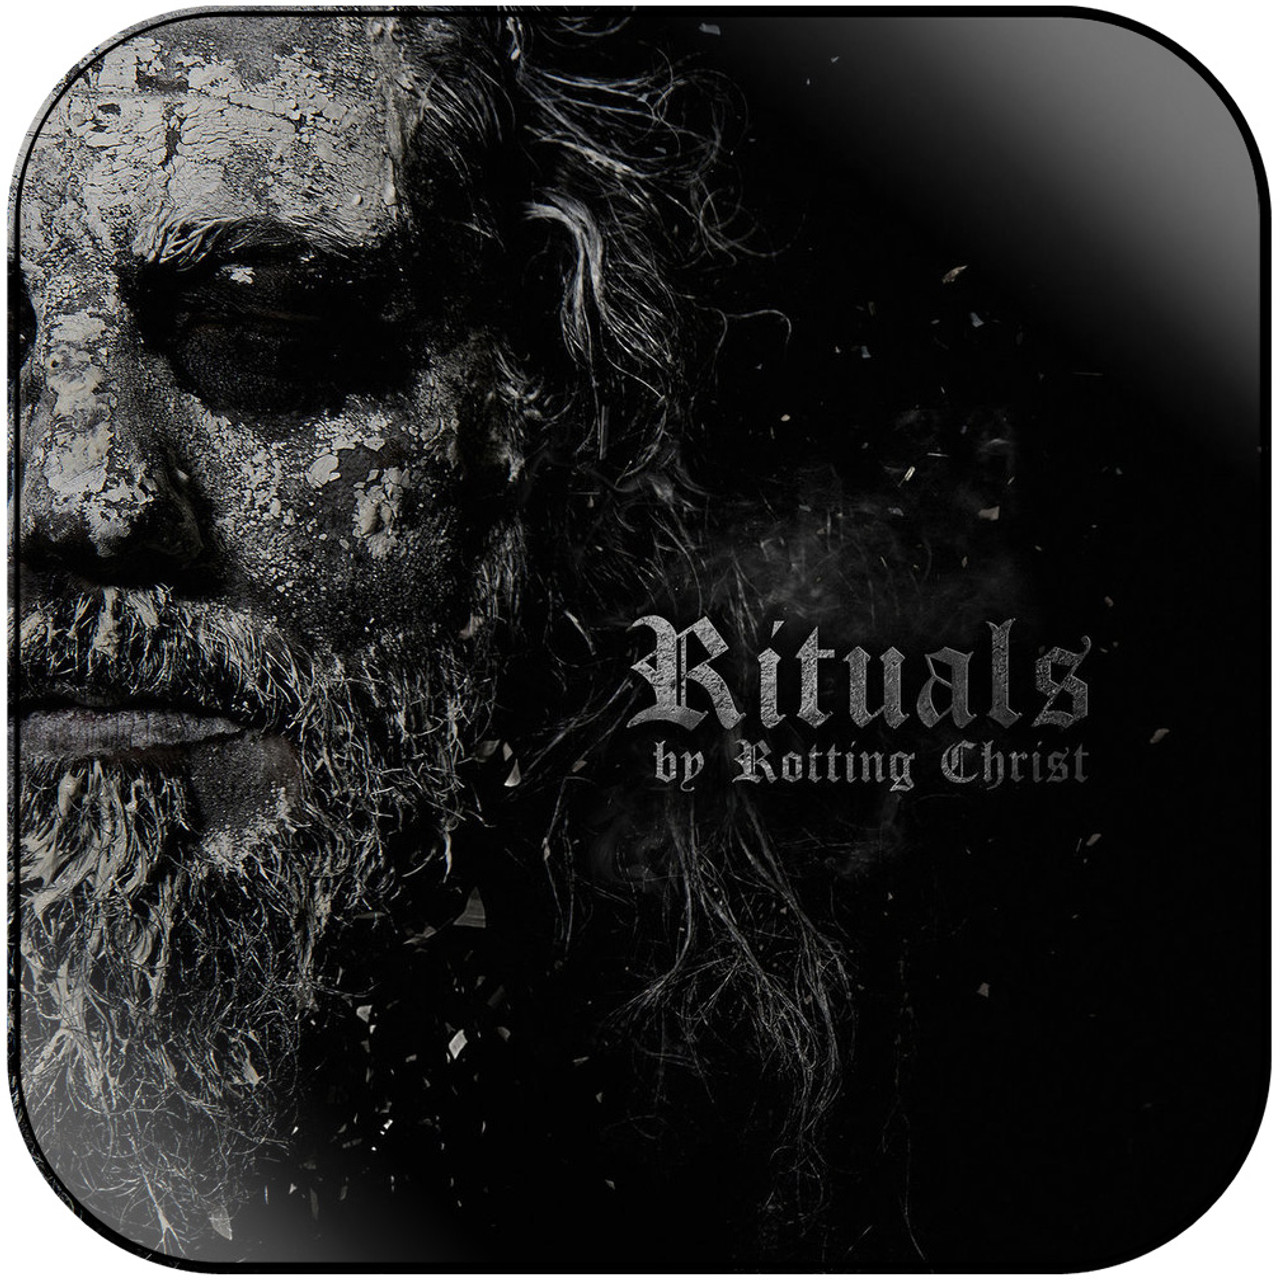 Rotting Christ - rituals Album Cover Sticker Album Cover Sticker